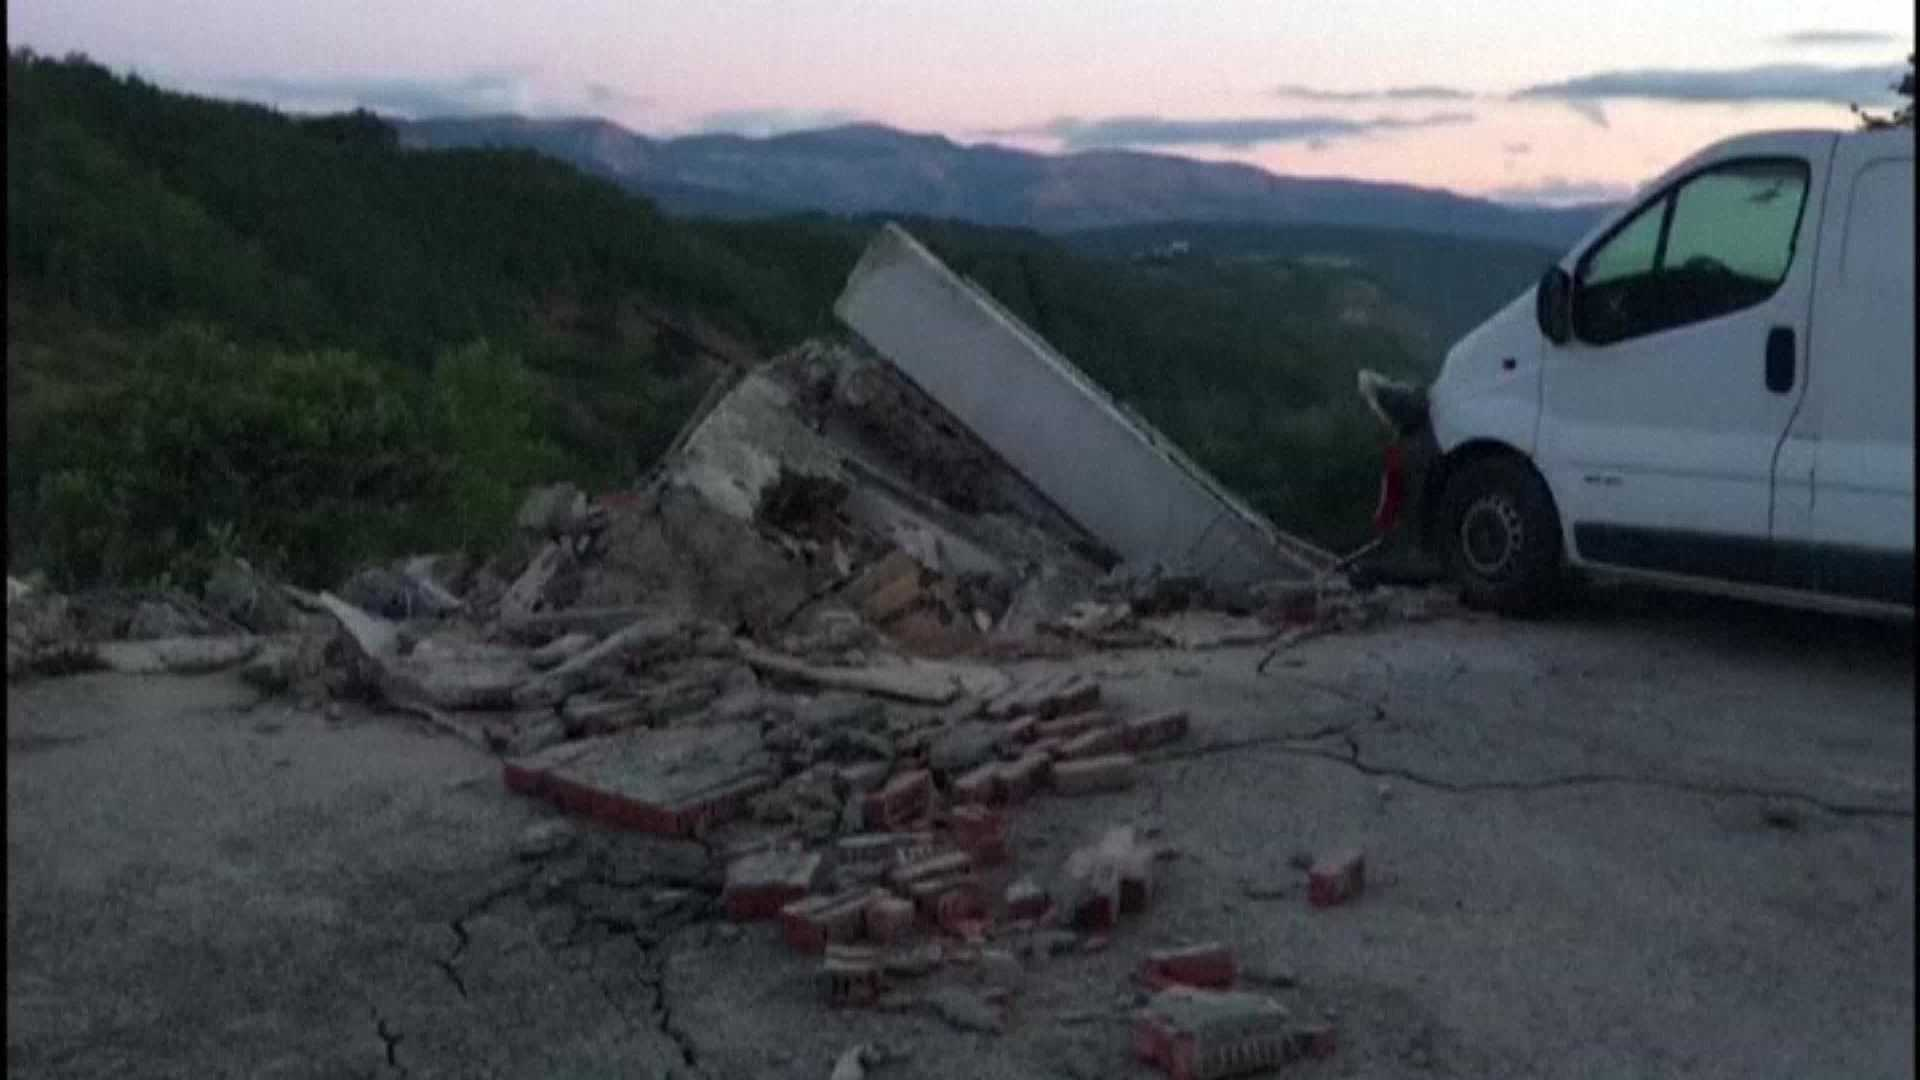 A 6.2 magnitude earthquake shook central Italy early Wednesday morning. As the sun began to rise, the damage caused by the quake in the Italian town of Amatrice  was more visible.